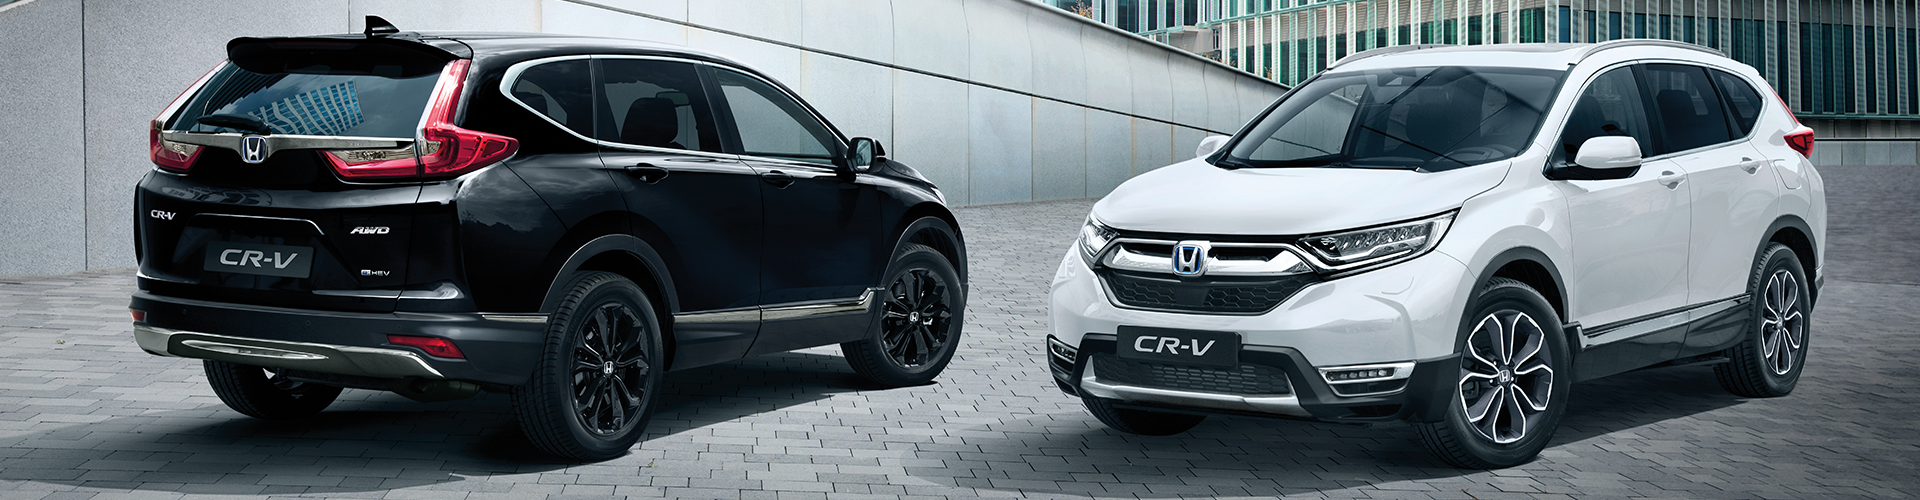 Image of Honda CR-V Hybrid